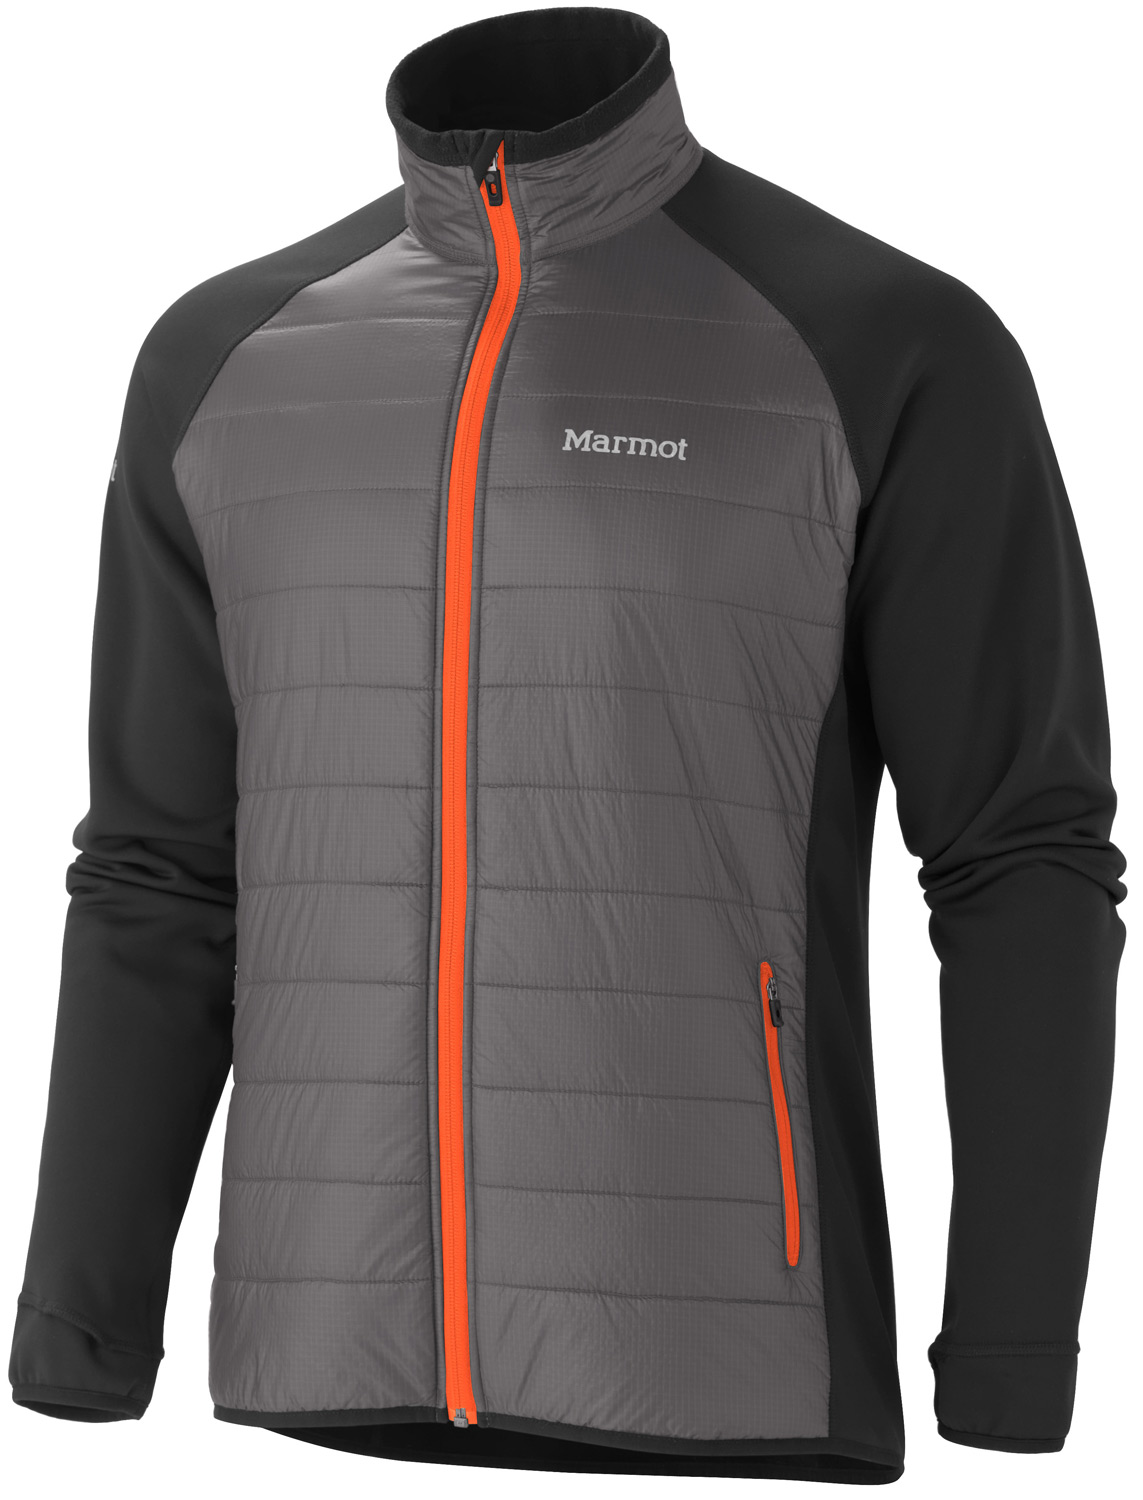 Key Features of the Marmot Variant Jacket: Full Zip Jacket with Thermal R Eco Insulation at Front Body Polartec® Power Stretch® Panels at Side Torso, Sleeves and Back Thumbholes Lightweight Stretch Binding at Cuffs and Bottom Hem Front Hand Zip Pockets, Reflective Logos Weight 0lbs 12.8oz (362.9g) Materials Polartec®Power Stretch® 88% Polyester, 12% Elastane 6.8 oz/yd / 100% Nylon Ripstop DWR 0.8 oz/yd Center Back Length 27.25in Fit Athletic Fit - $111.95